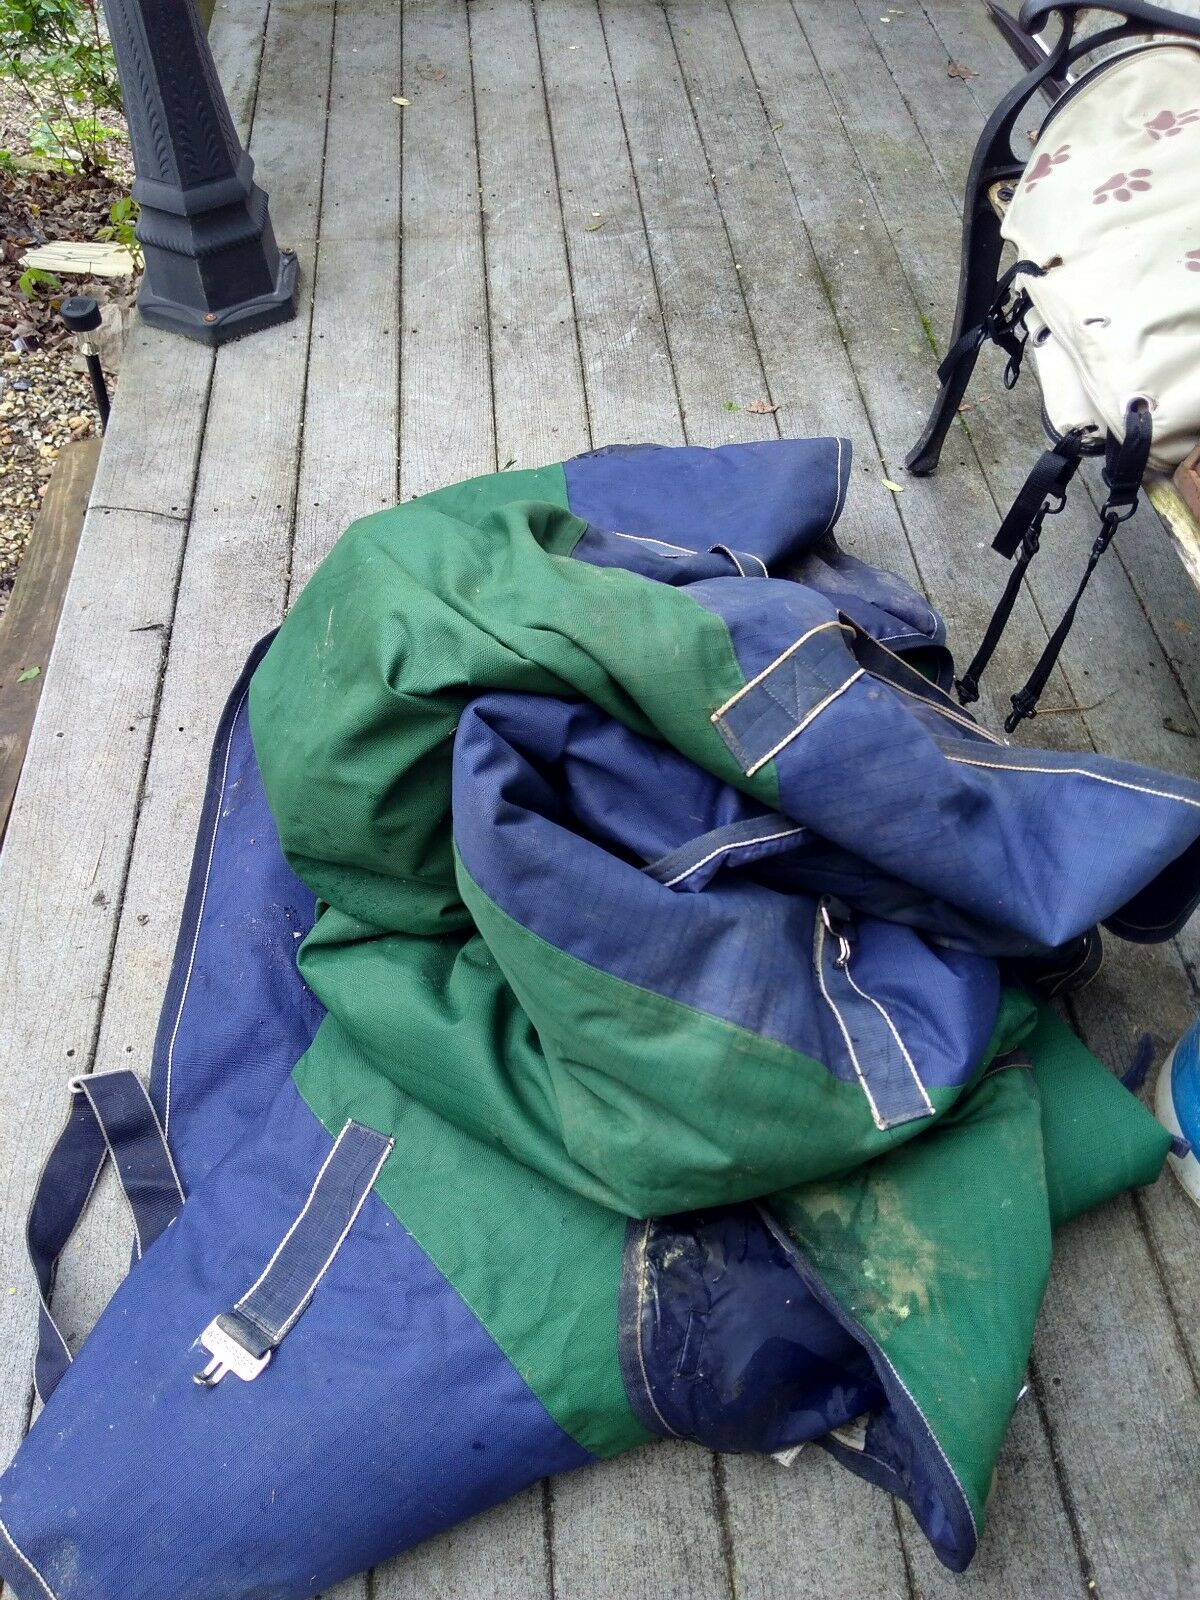 2 horse blankets, whetherbeeta heavy winter blankets , green and bluee 80.